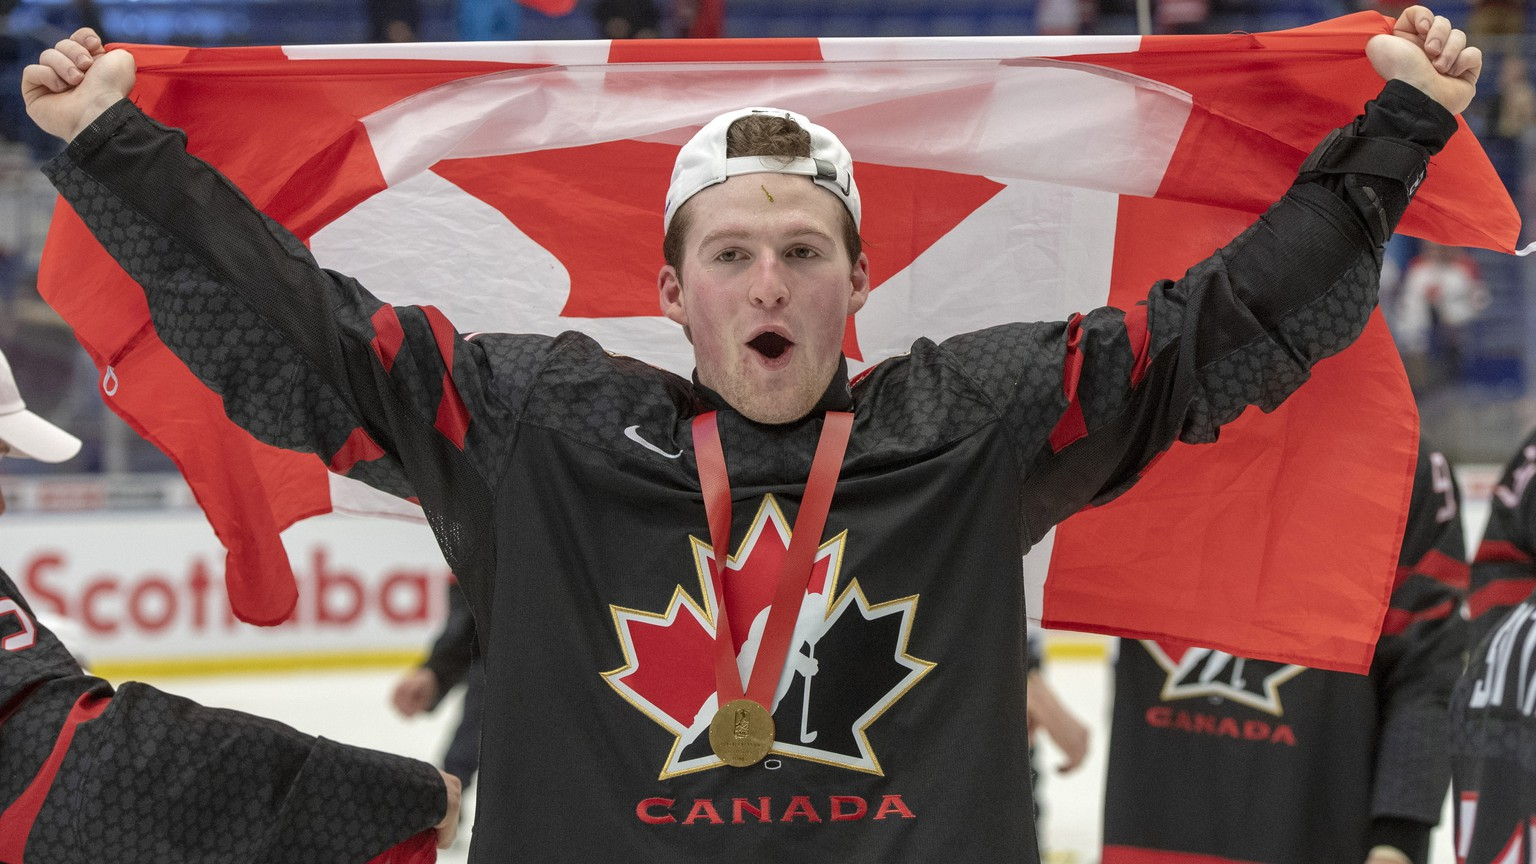 Canada's Alexis Lafreniere celebrates after defeating Russia in the gold medal game at the World Junior Hockey Championships, Sunday, Jan. 5, 2020, in Ostrava, Czech Republic. (Ryan Remiorz/The Canadian Press via AP)